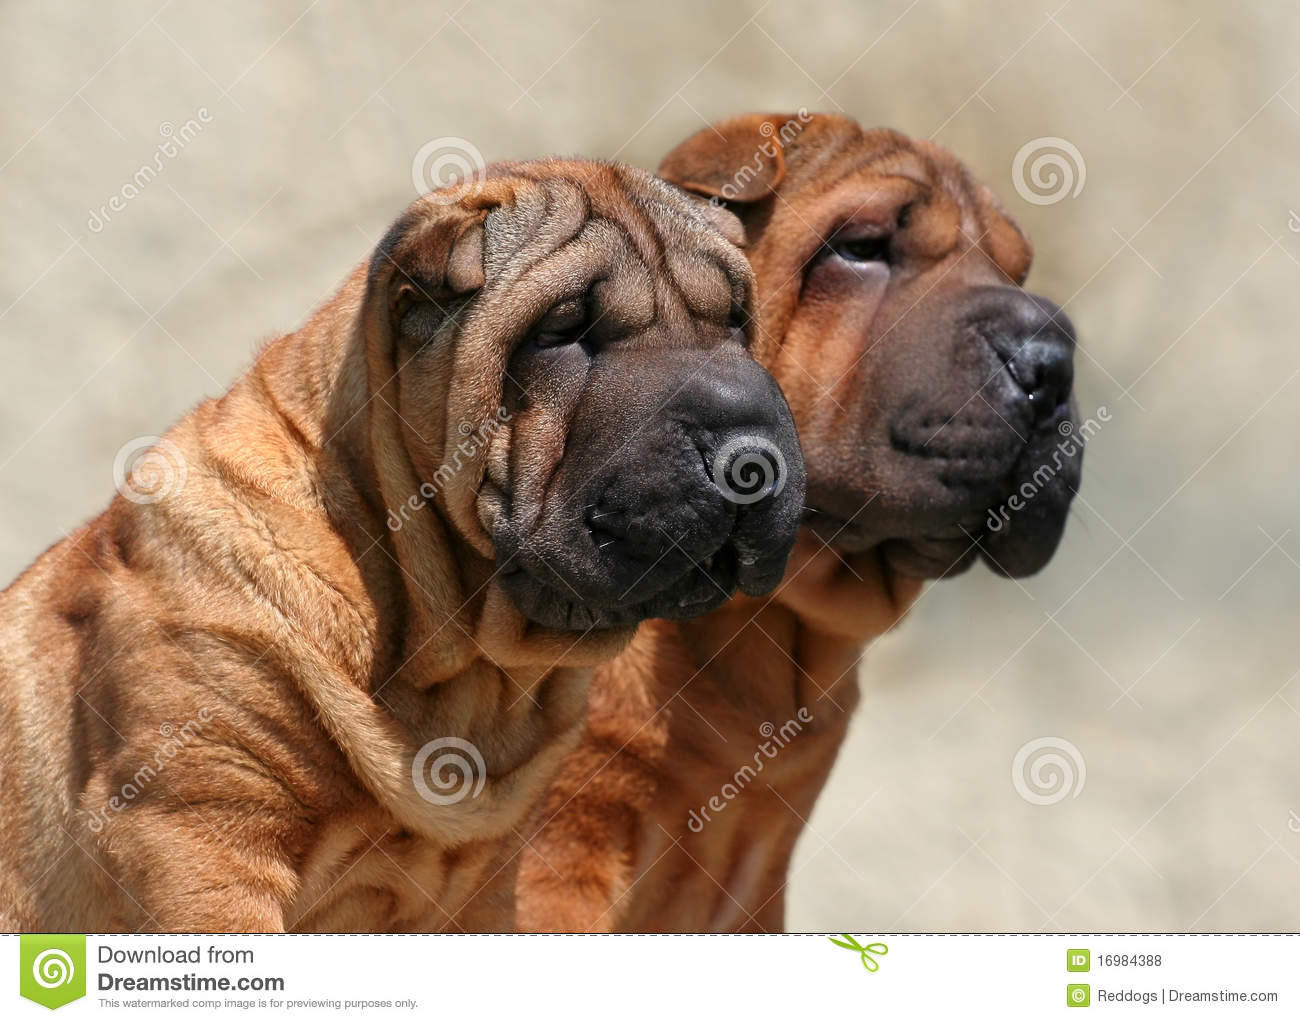 Wrinkly puppies cute wrinkled dog puppies